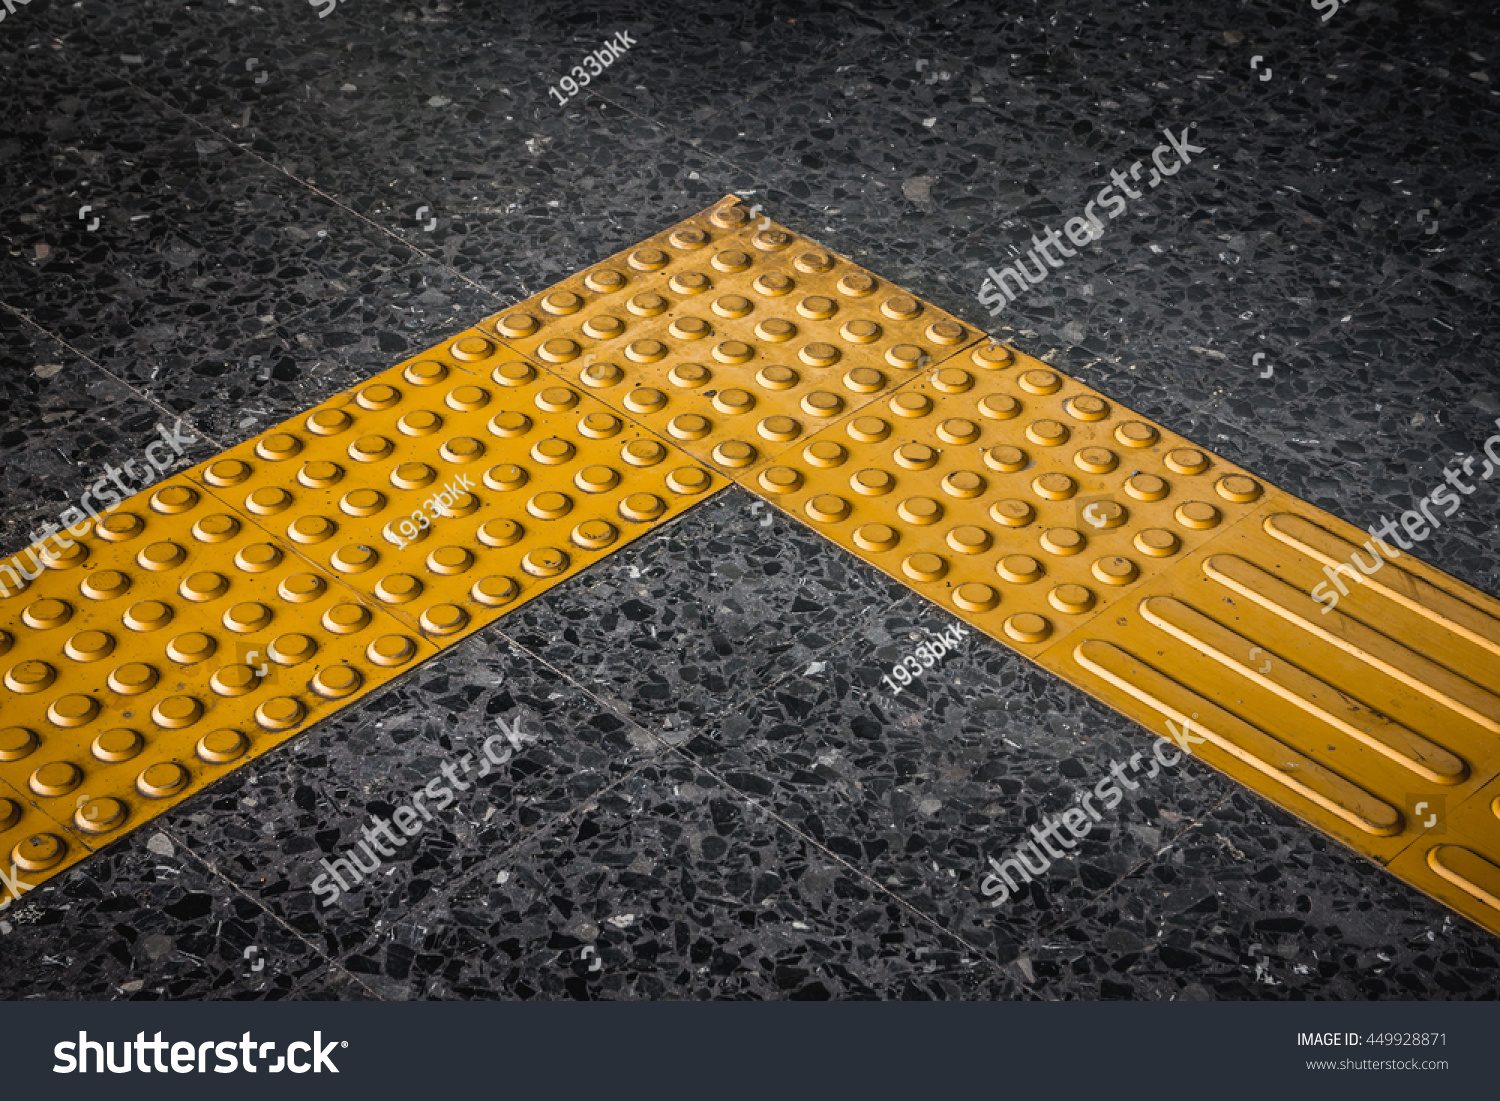 Braille Block Tactile Paving For Blind Handicap Stock